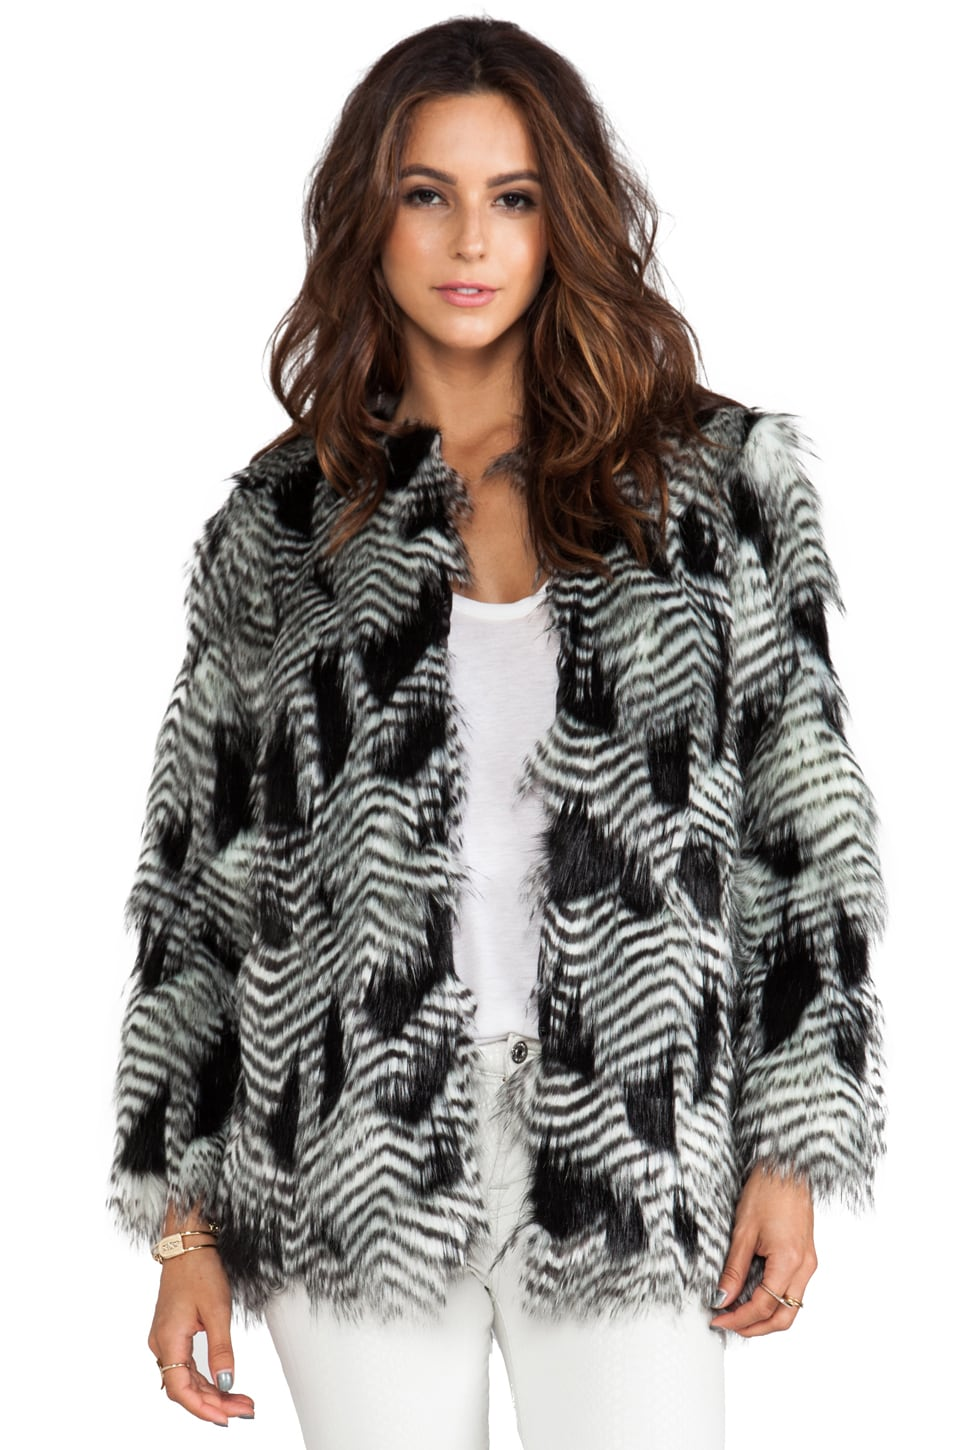 BSABLE Chelsea Faux Fur Jacket in Black Feather